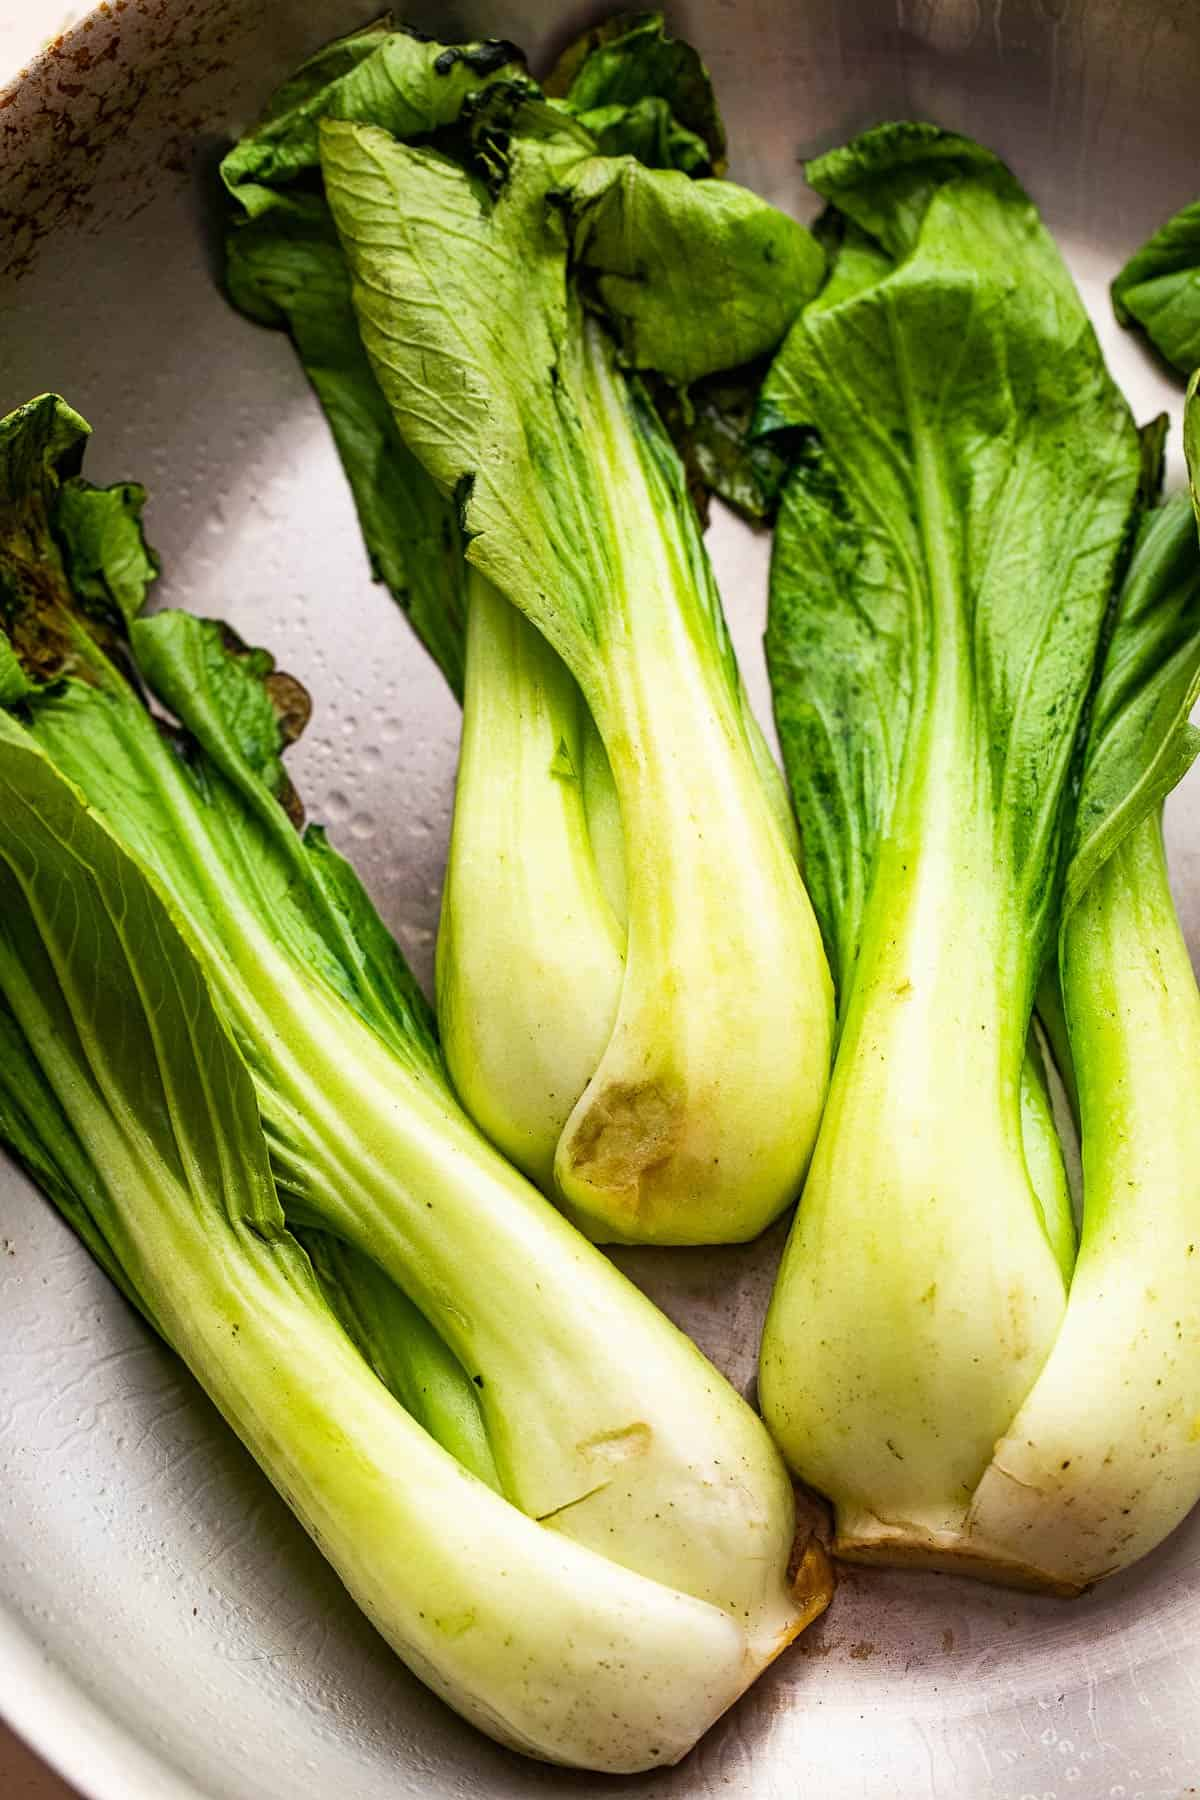 raw bok choy in a stainless steel skillet